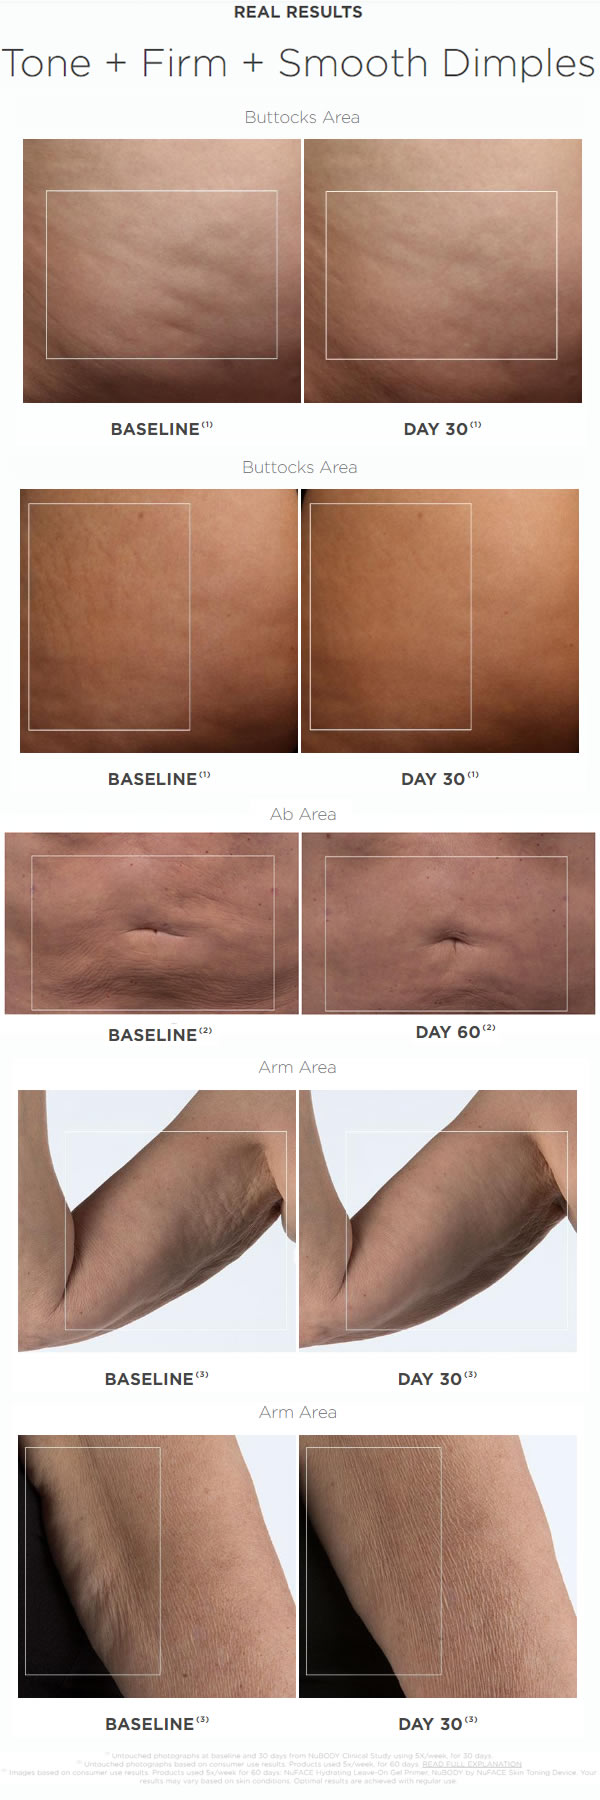 NuFACE NuBODY Skin Toning Device Before & After